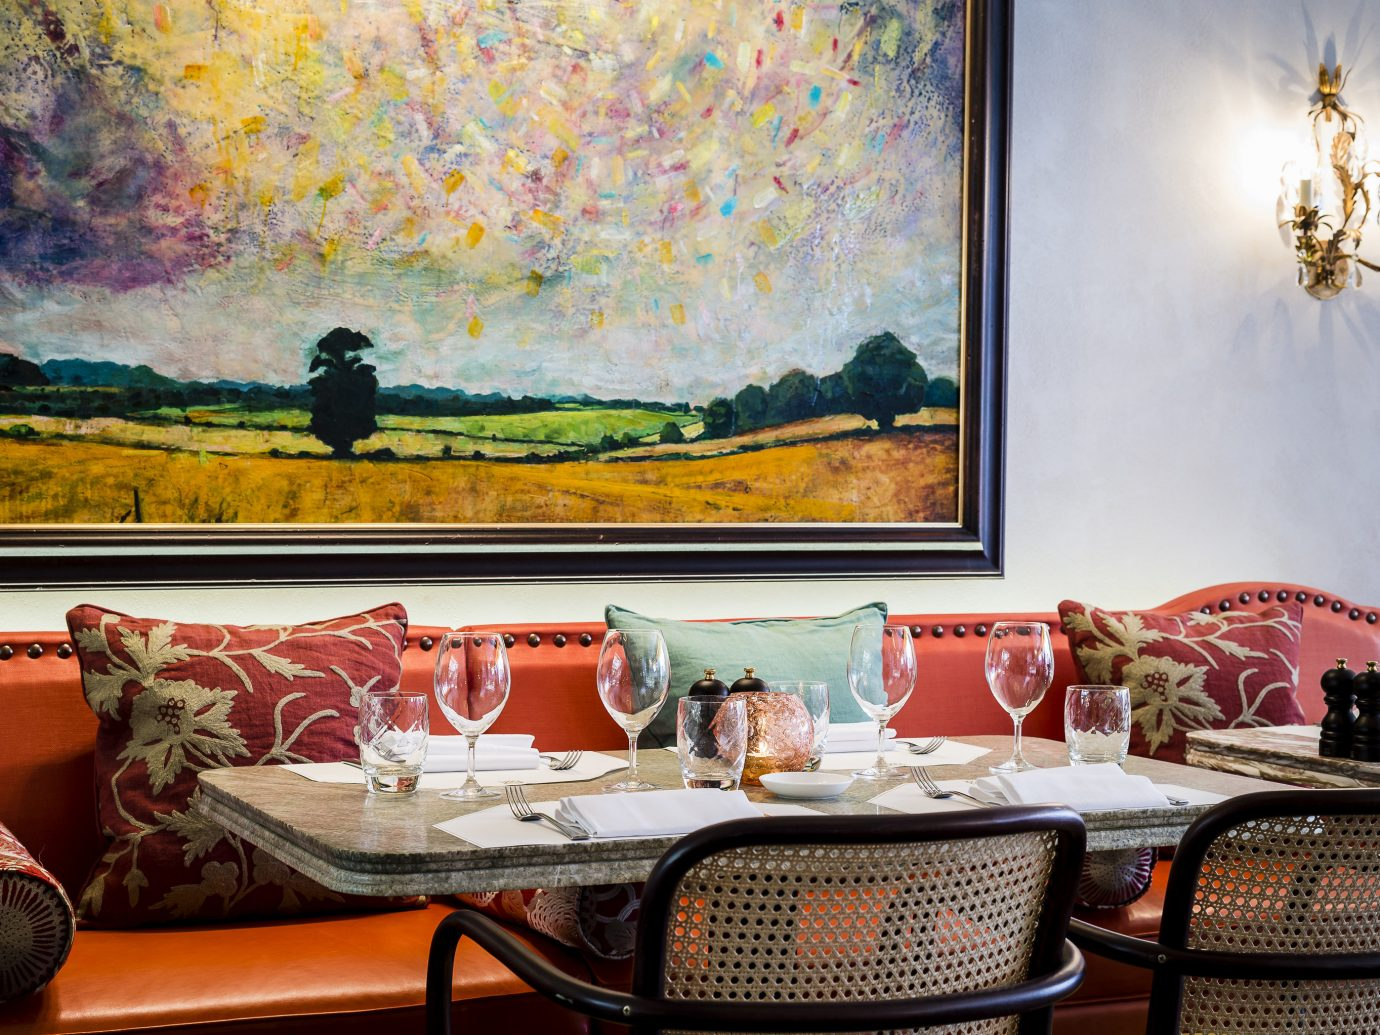 Dining Room and art at Daphne's Restaurant in Chelsea, London